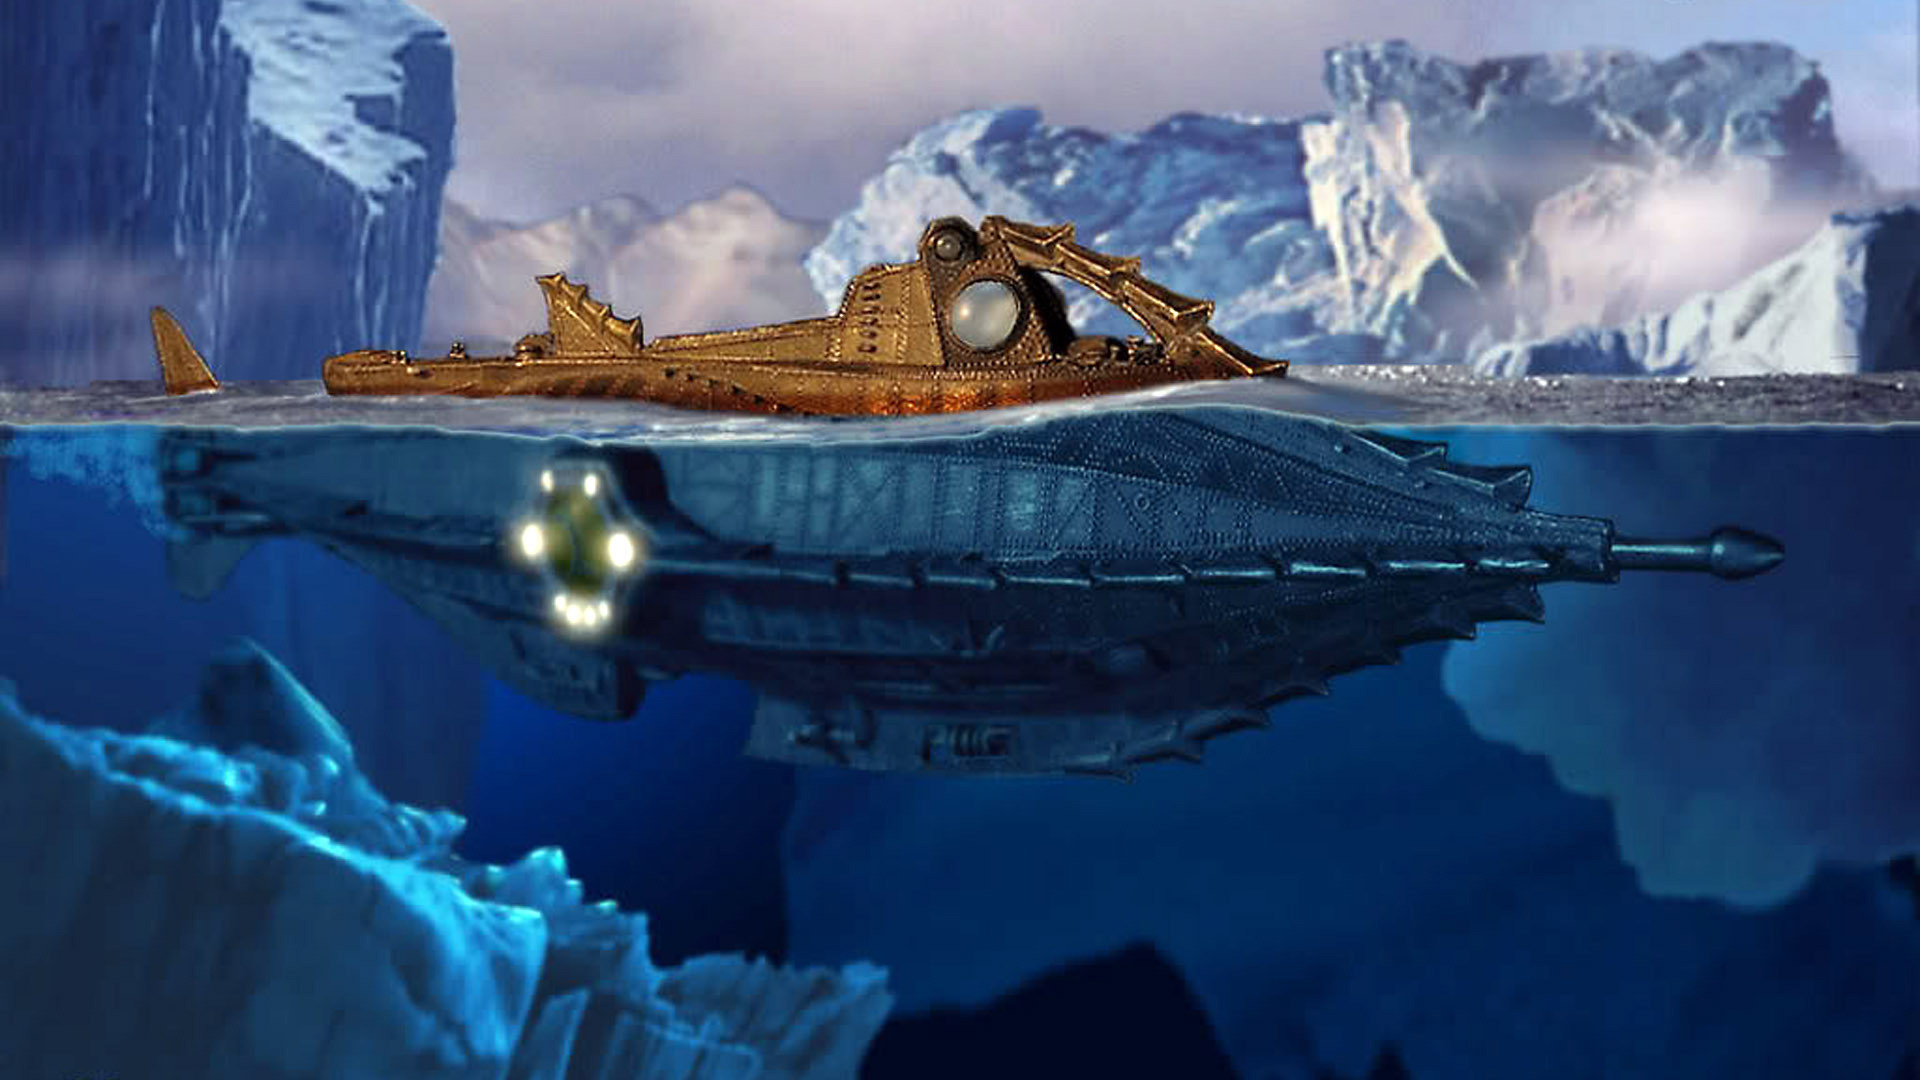 Nice wallpapers 20,000 Leagues Under The Sea 1920x1080px